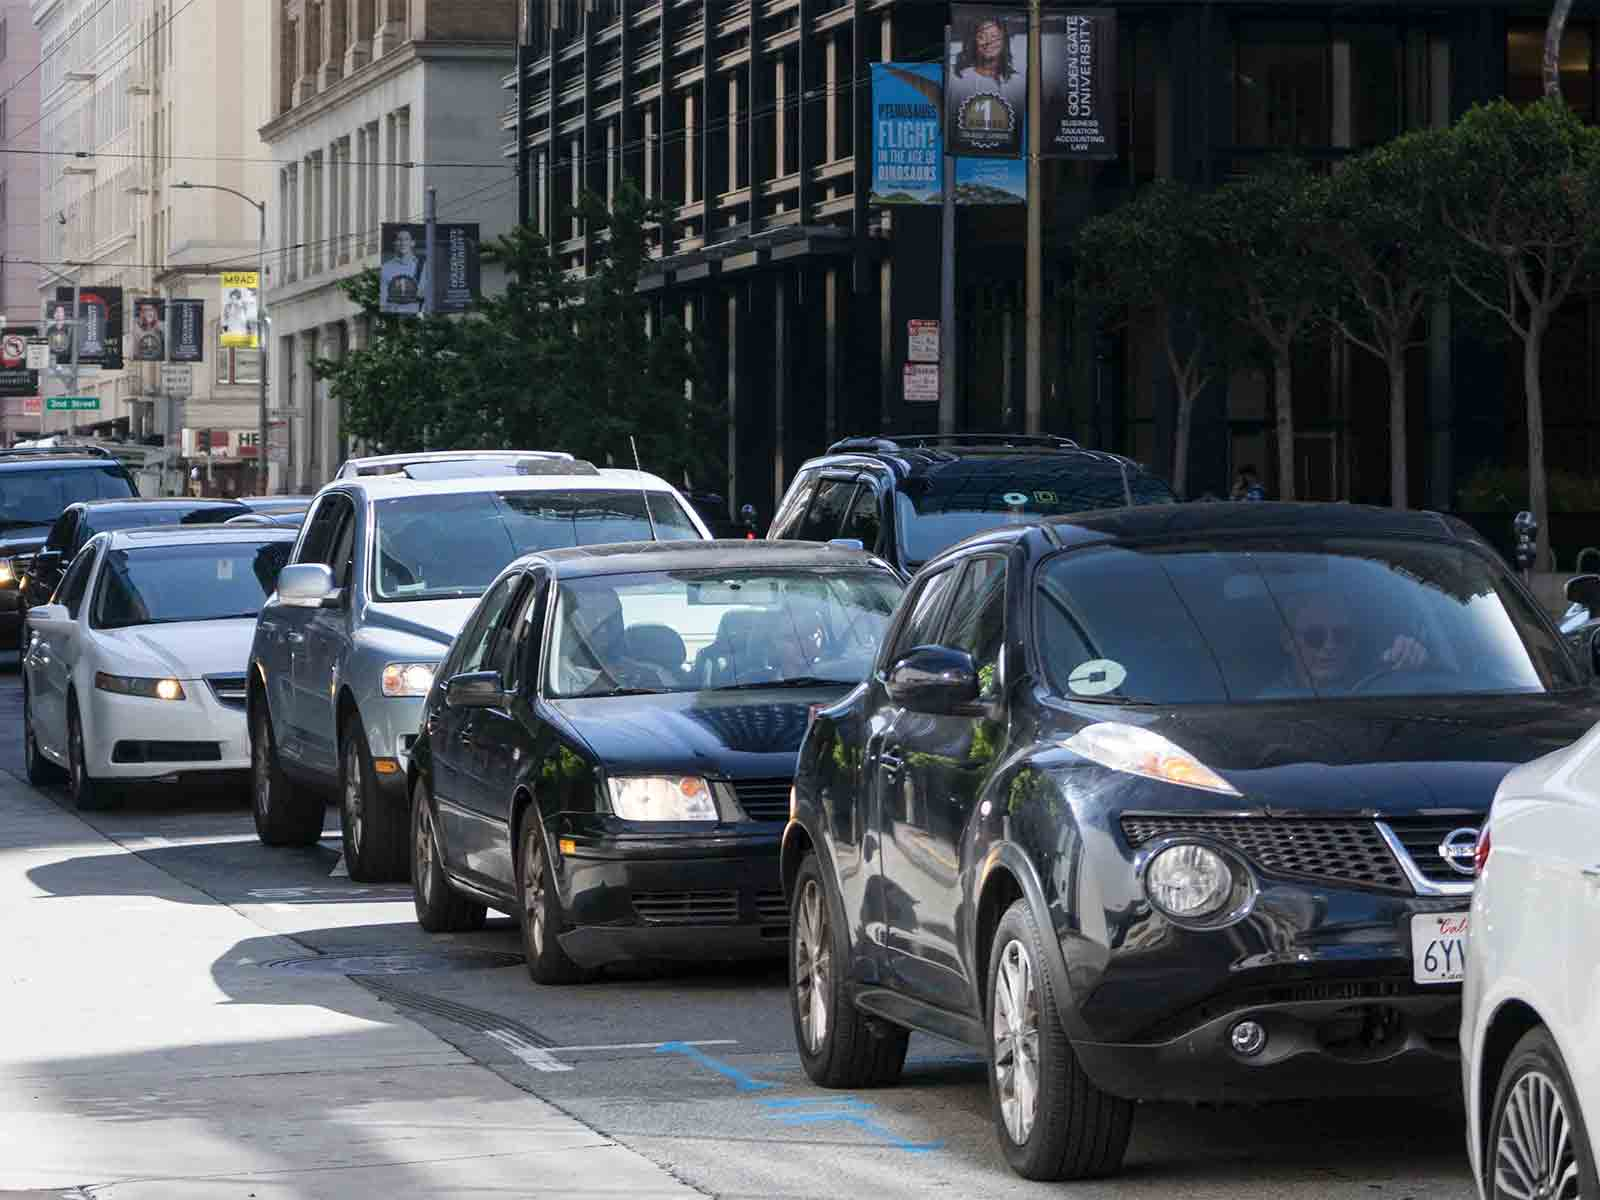 An estimated 5,700 ride-hail vehicles make 170,000 vehicle trips within The City, according to a recent study by the San Francisco County Transportation Authority. (Sarahbeth Maney/Special to S.F. Examiner)